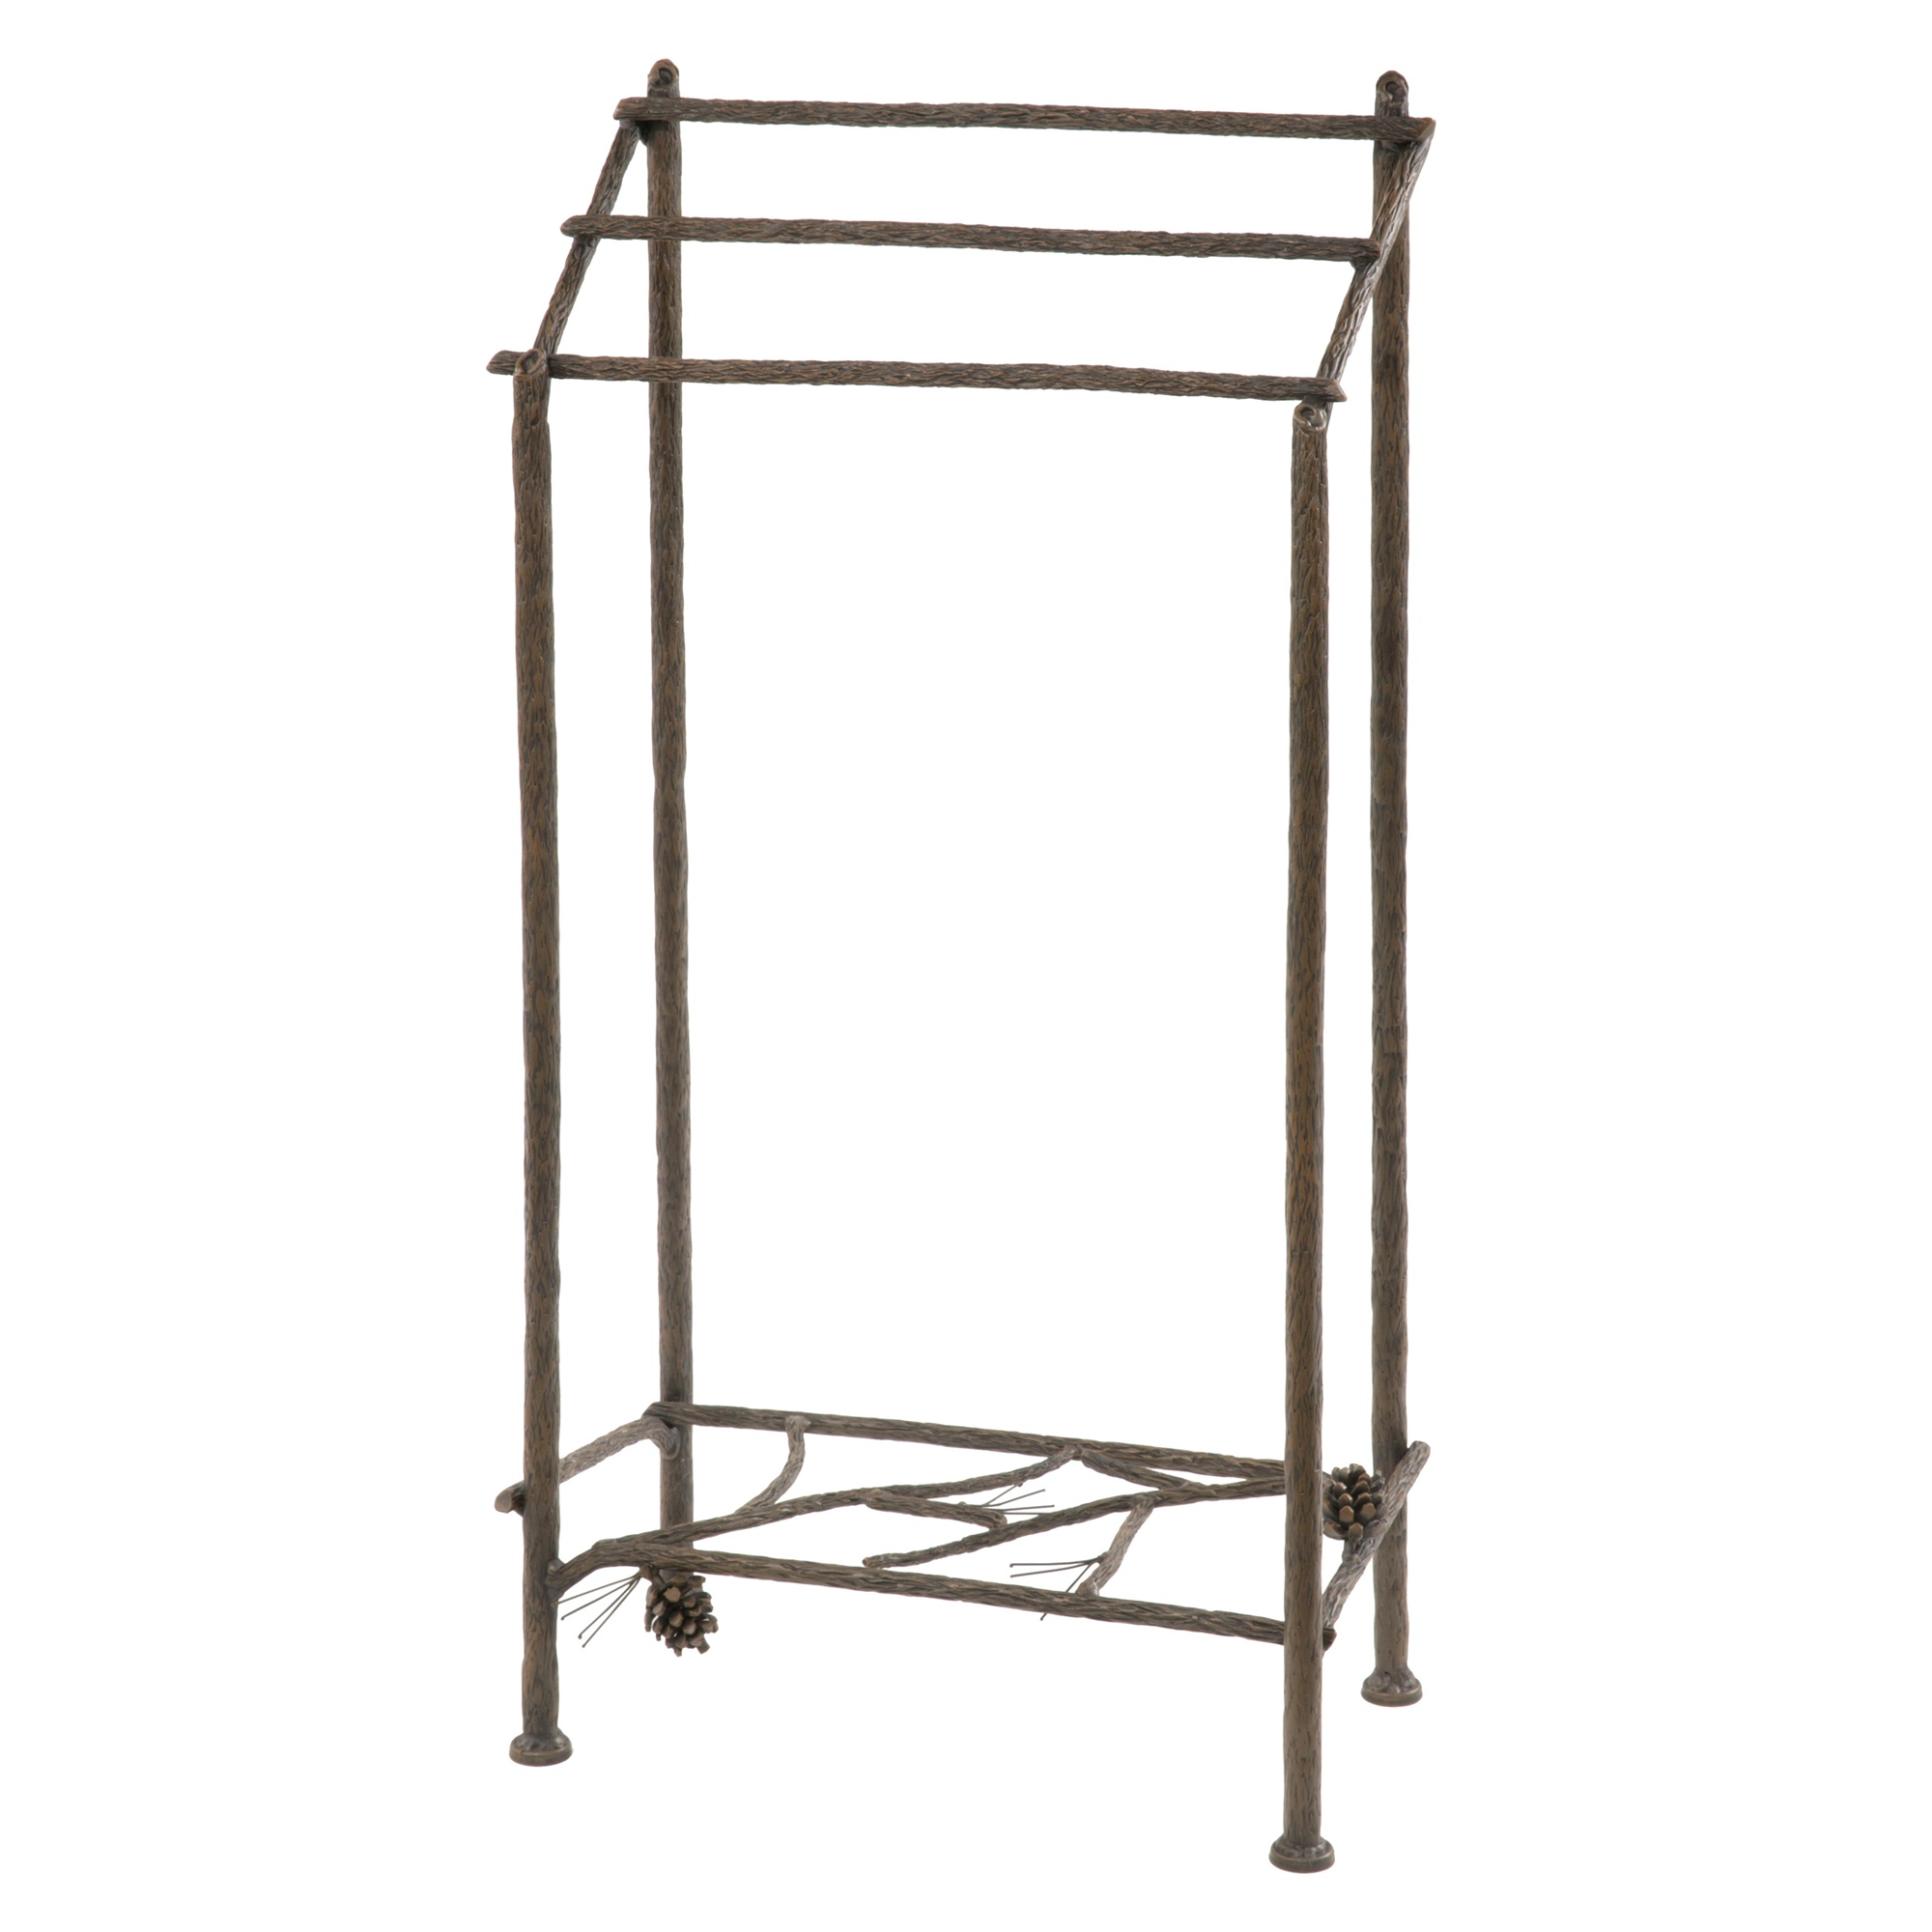 Wrought iron pine collection towel rack by stone county - Wrought iron towel racks bathroom ...